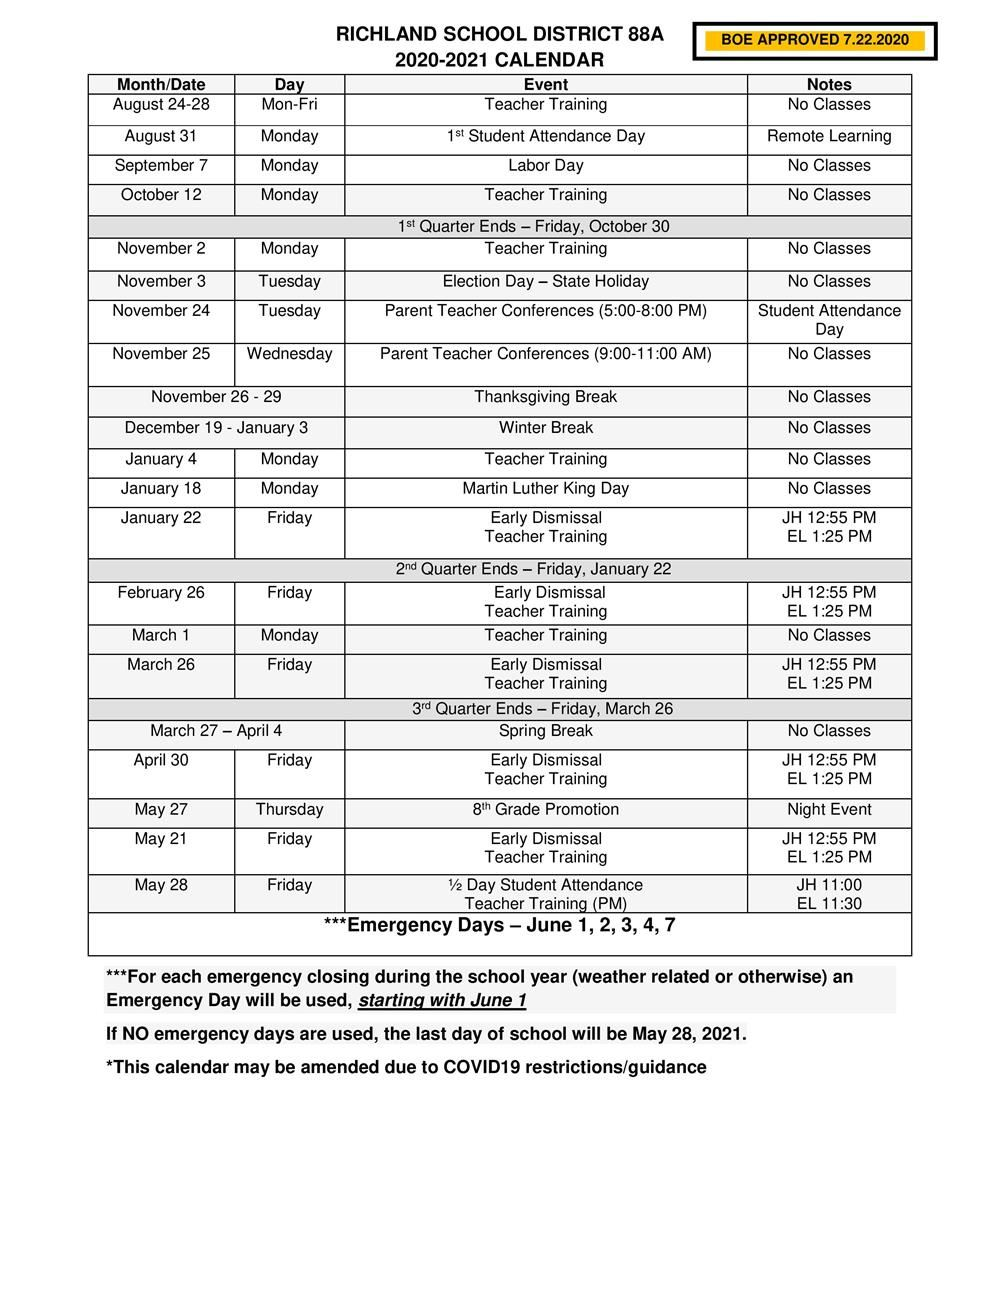 20 - 21 Amended School Calendar for Covid 19